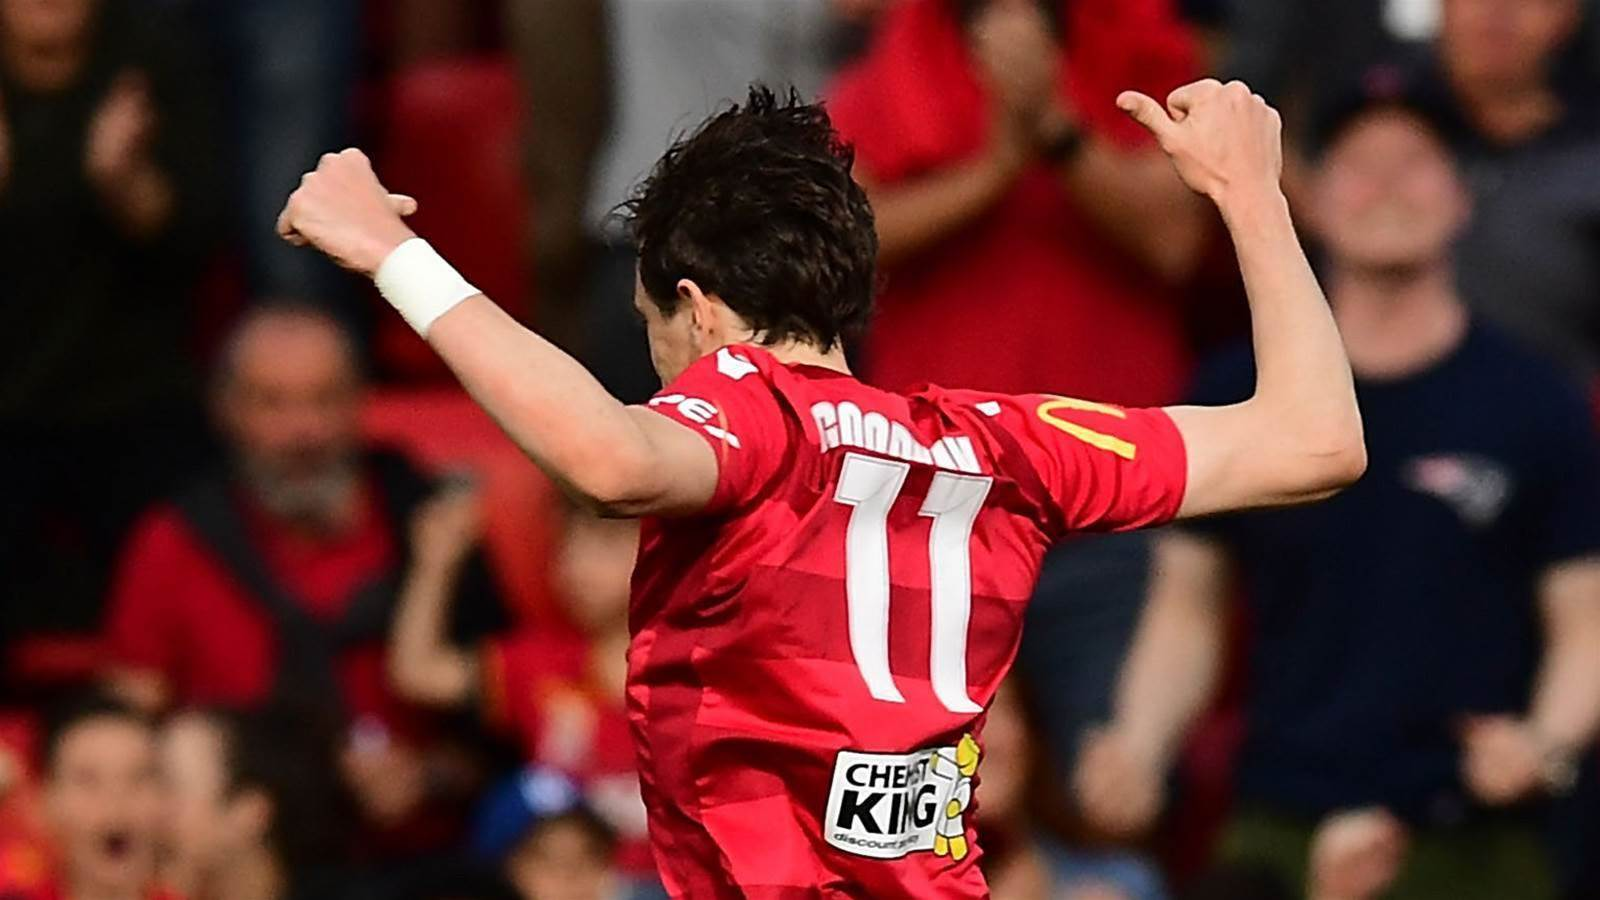 FFA Cup hero Goodwin: 'It went better than I expected...'